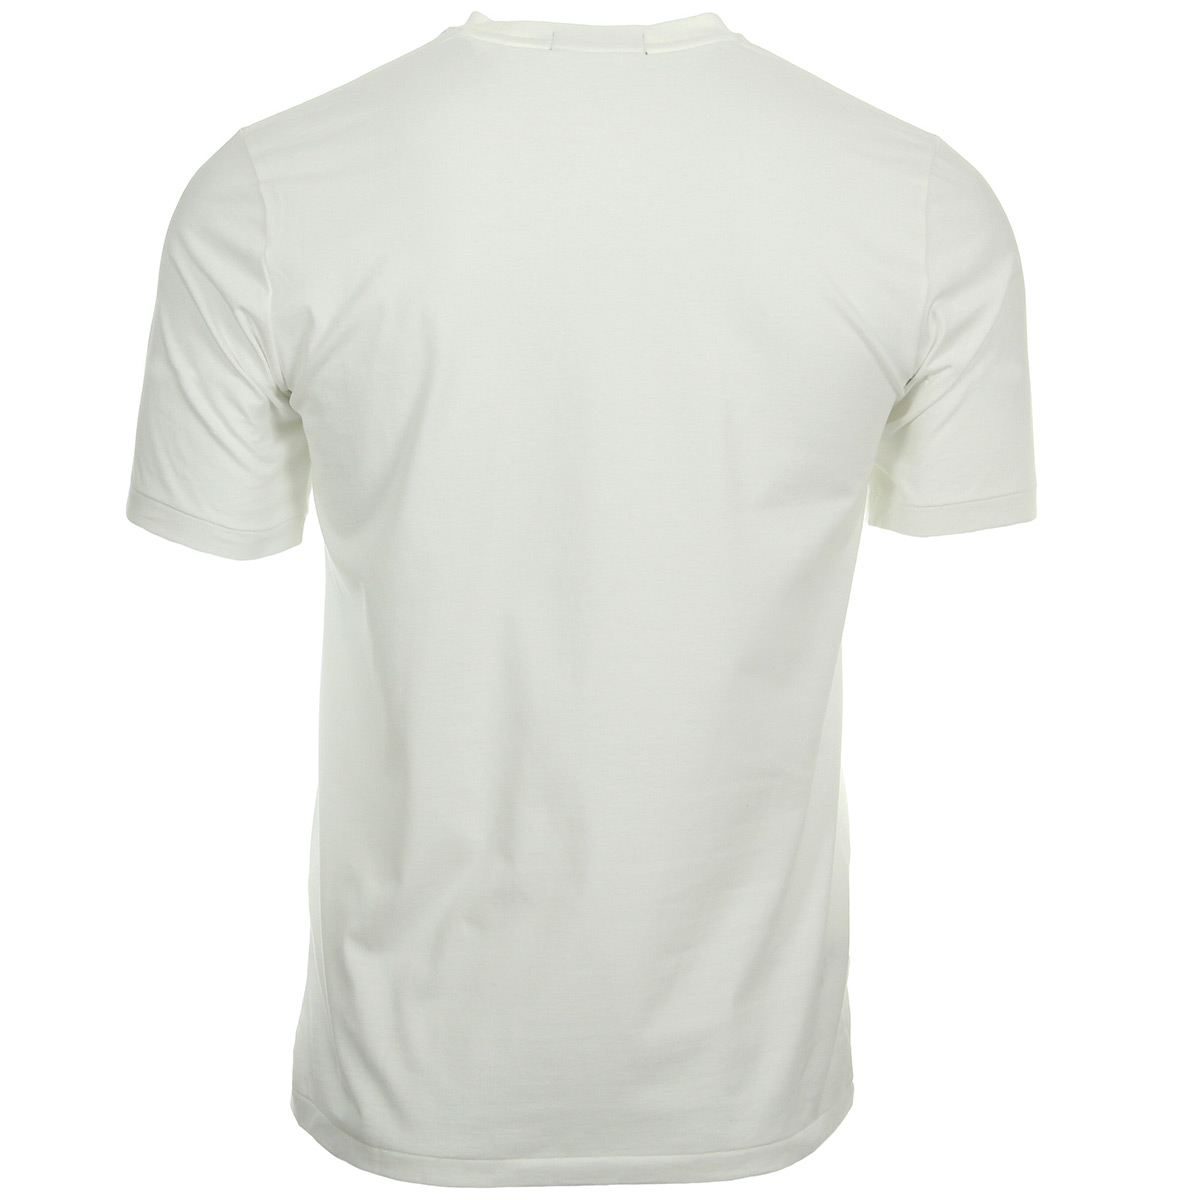 Fred Perry Monochrome Tennis T-Shirt M2605100, T-Shirts homme